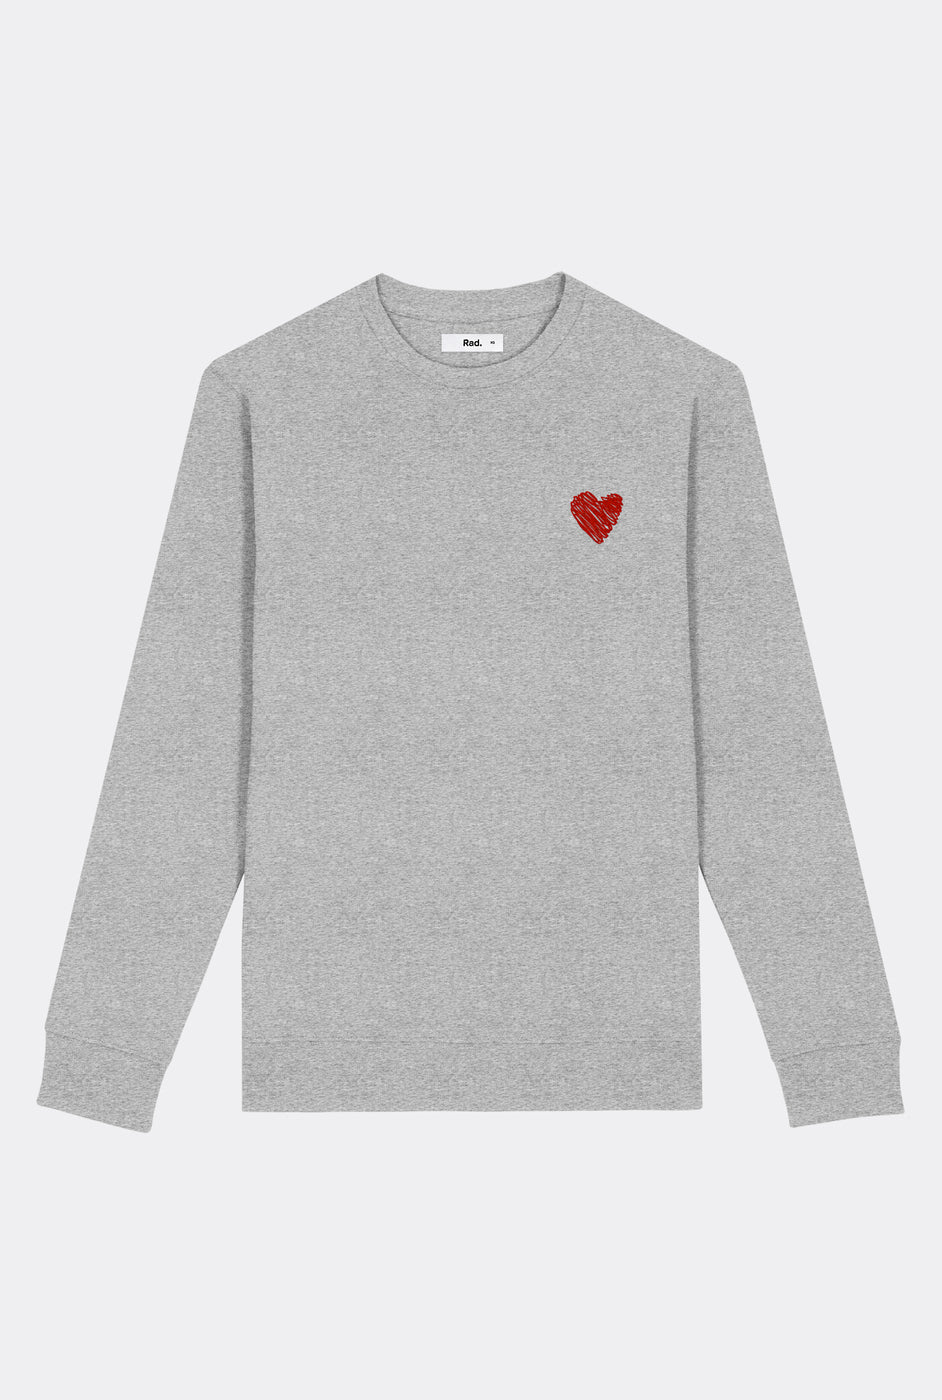 Crewneck Little Heart - Embroidered